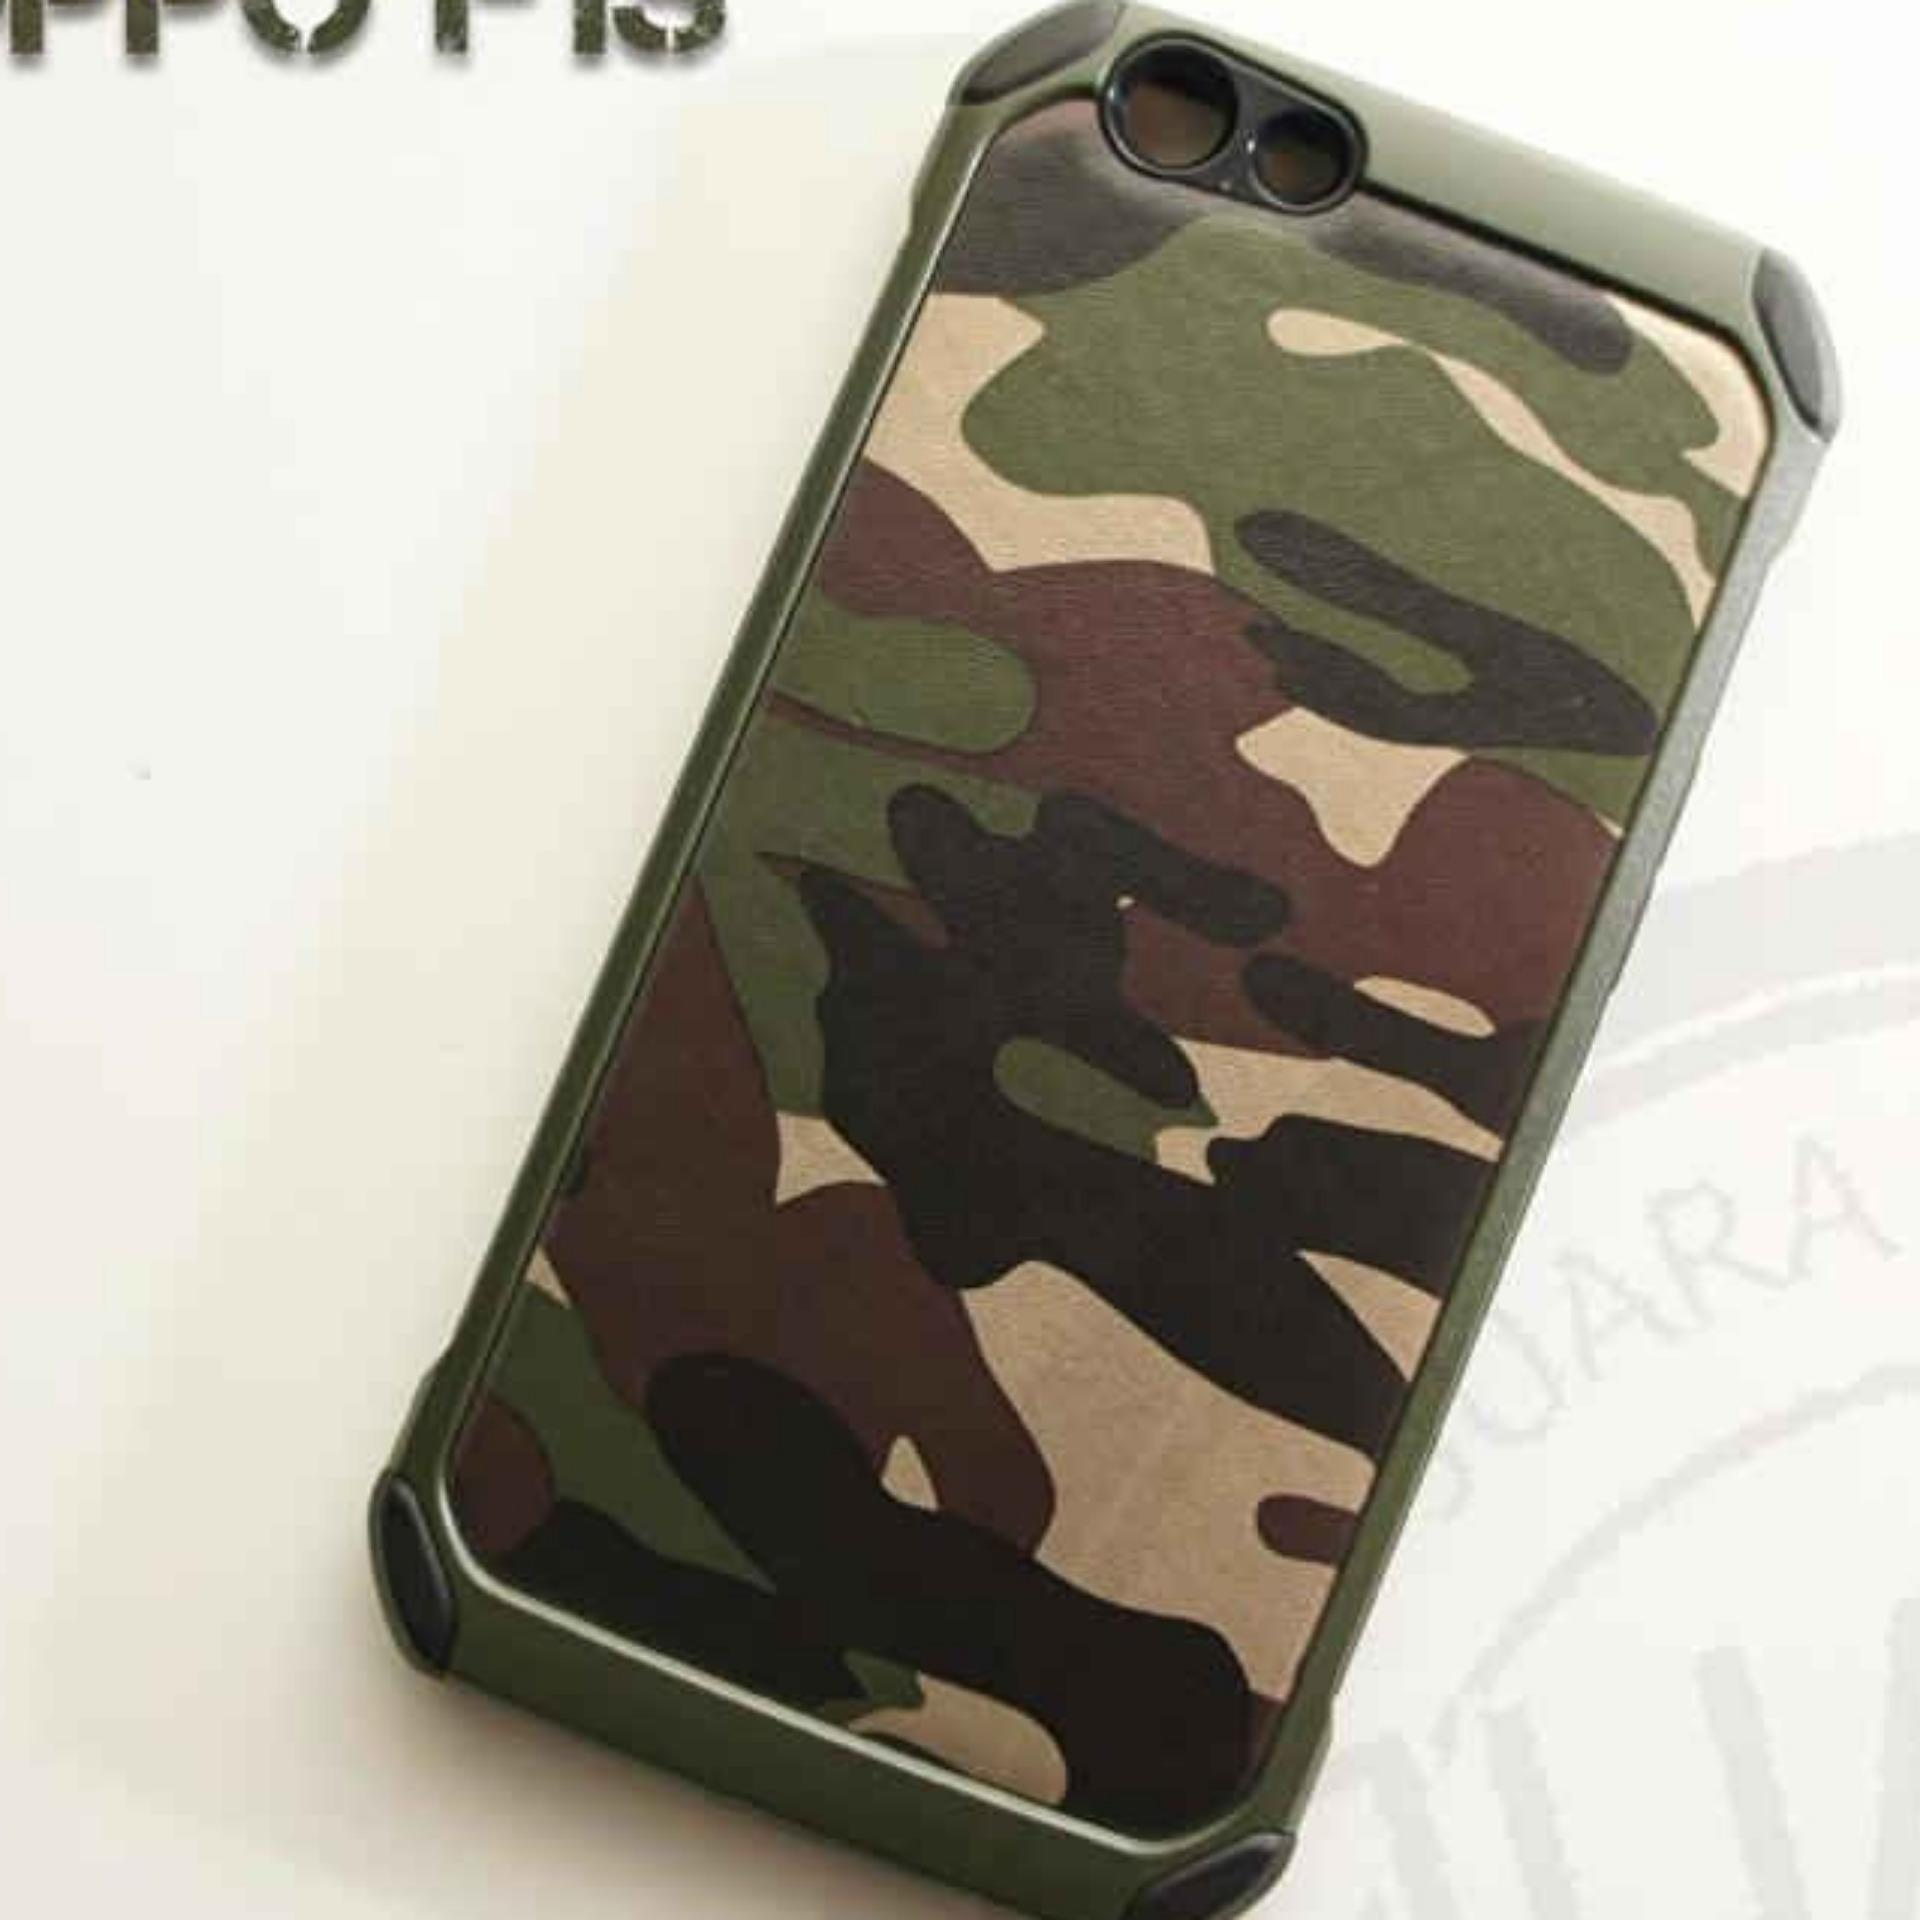 Beli Case Military Army High Protection For Oppo A59 Oppo F1S Army Hijau Online Terpercaya